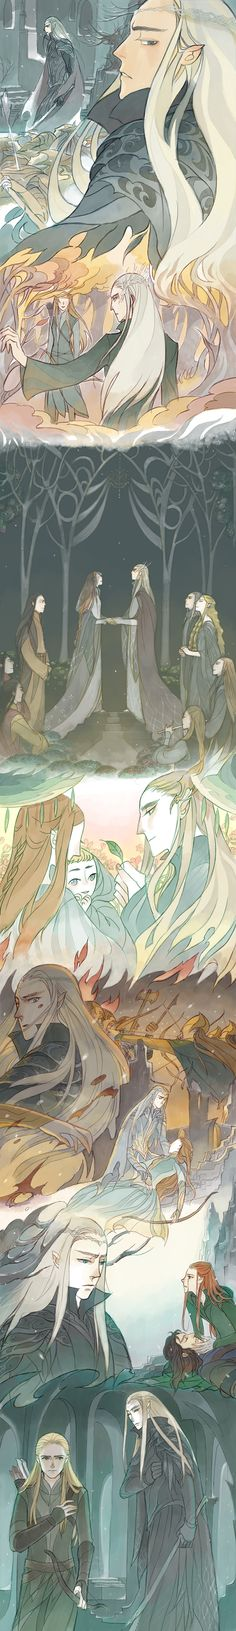 Awww! See this is what I think of every time I think of Thranduil